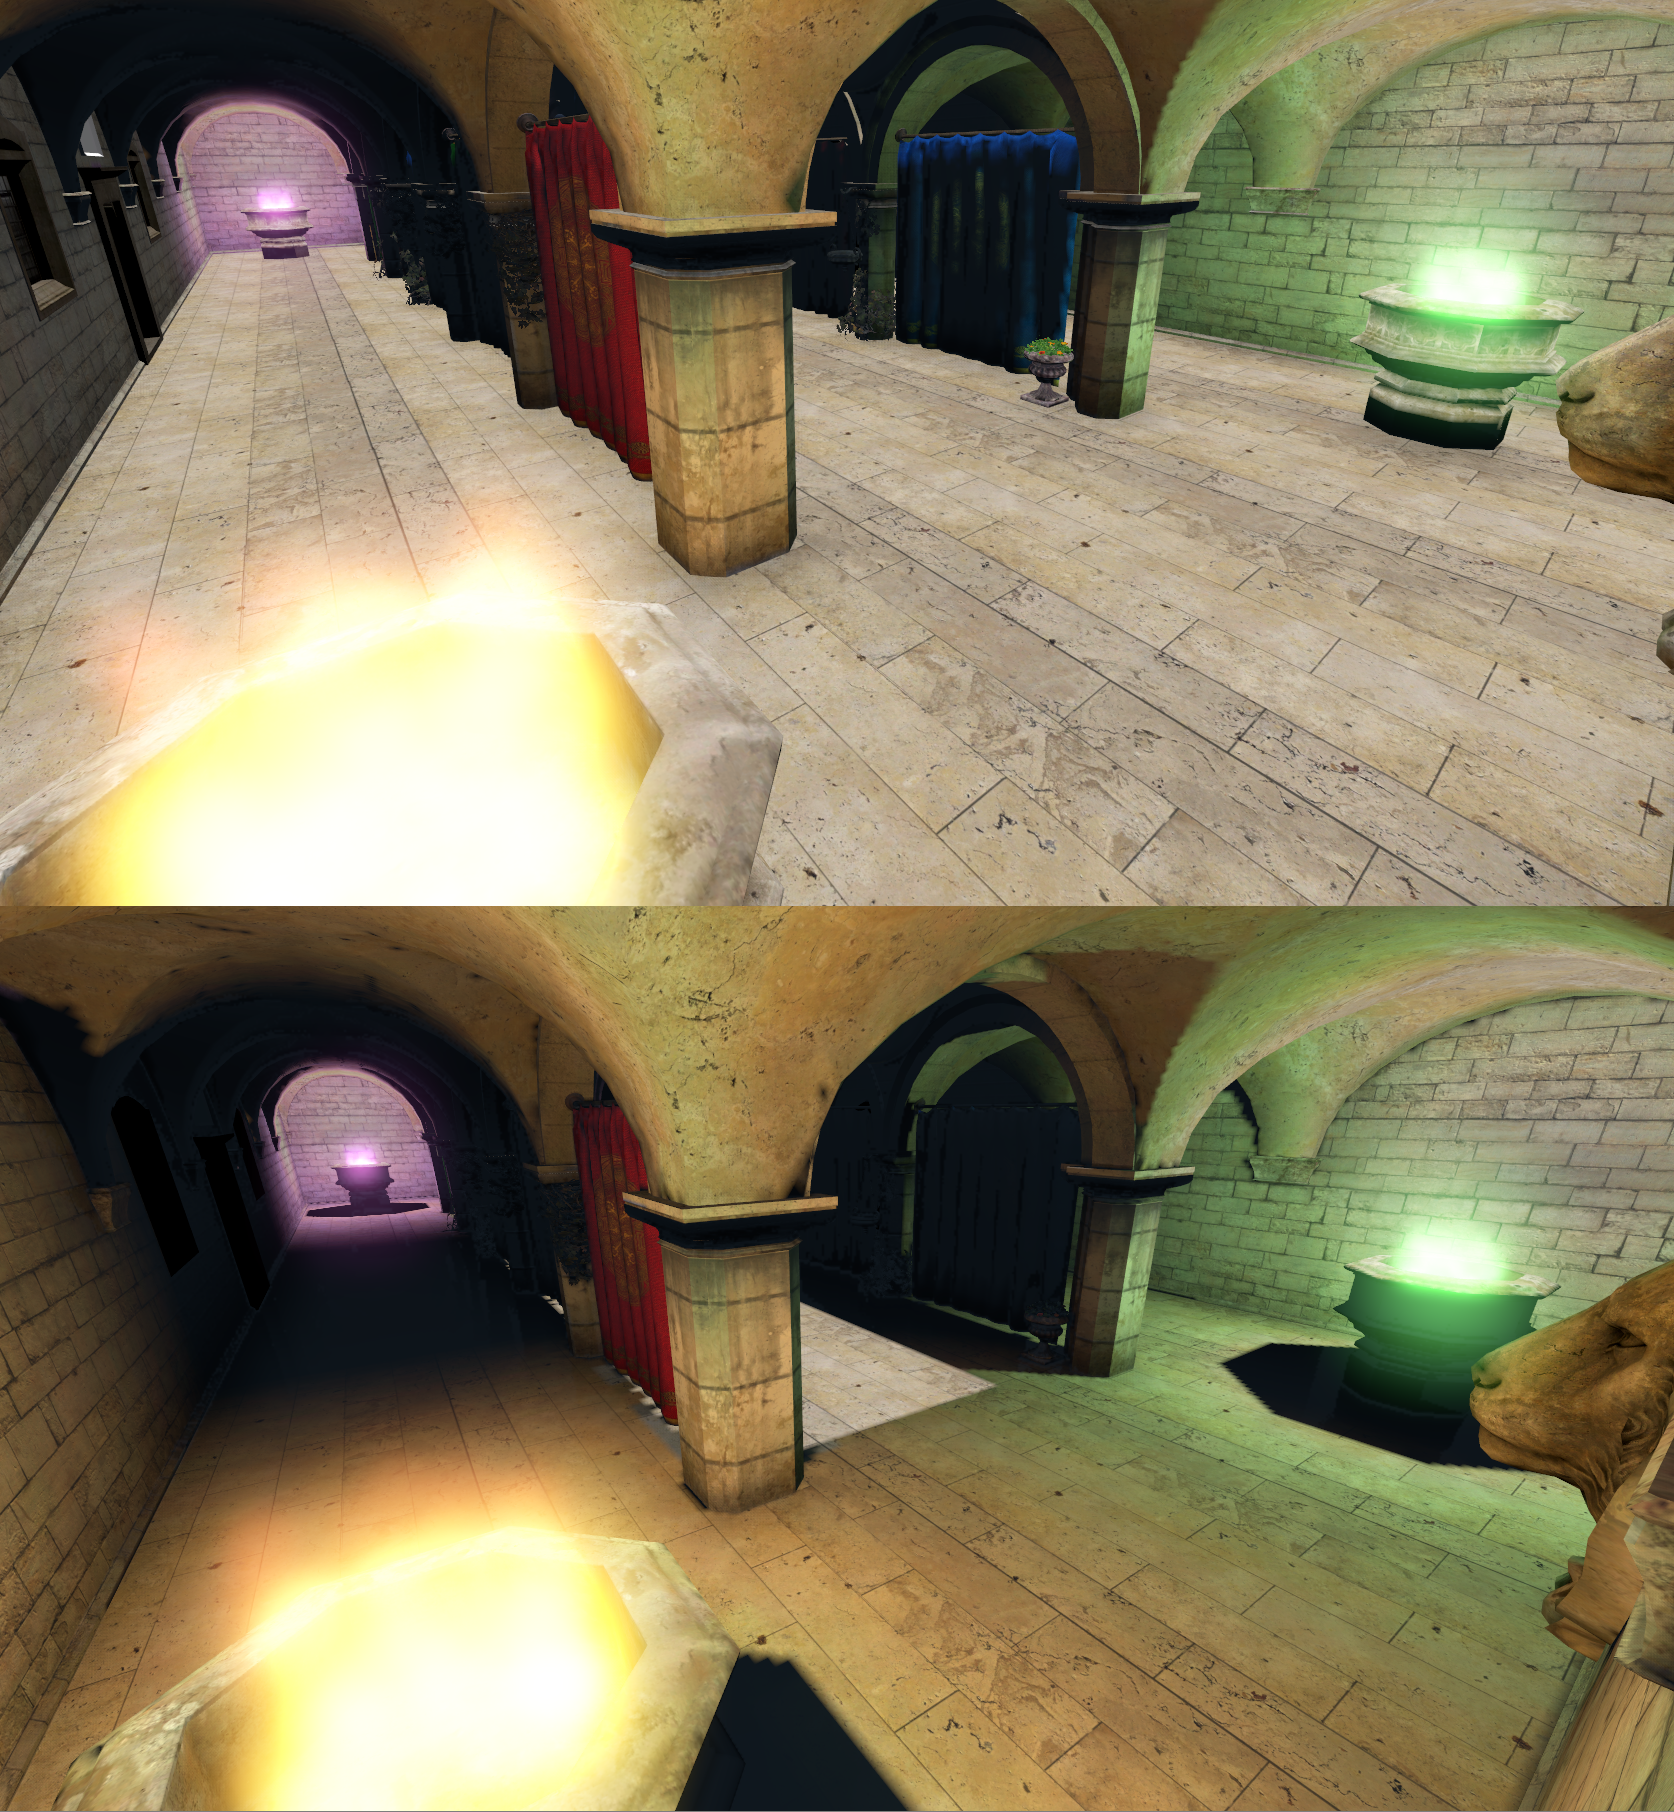 Sponza scene without and with occlusion for direct lighting